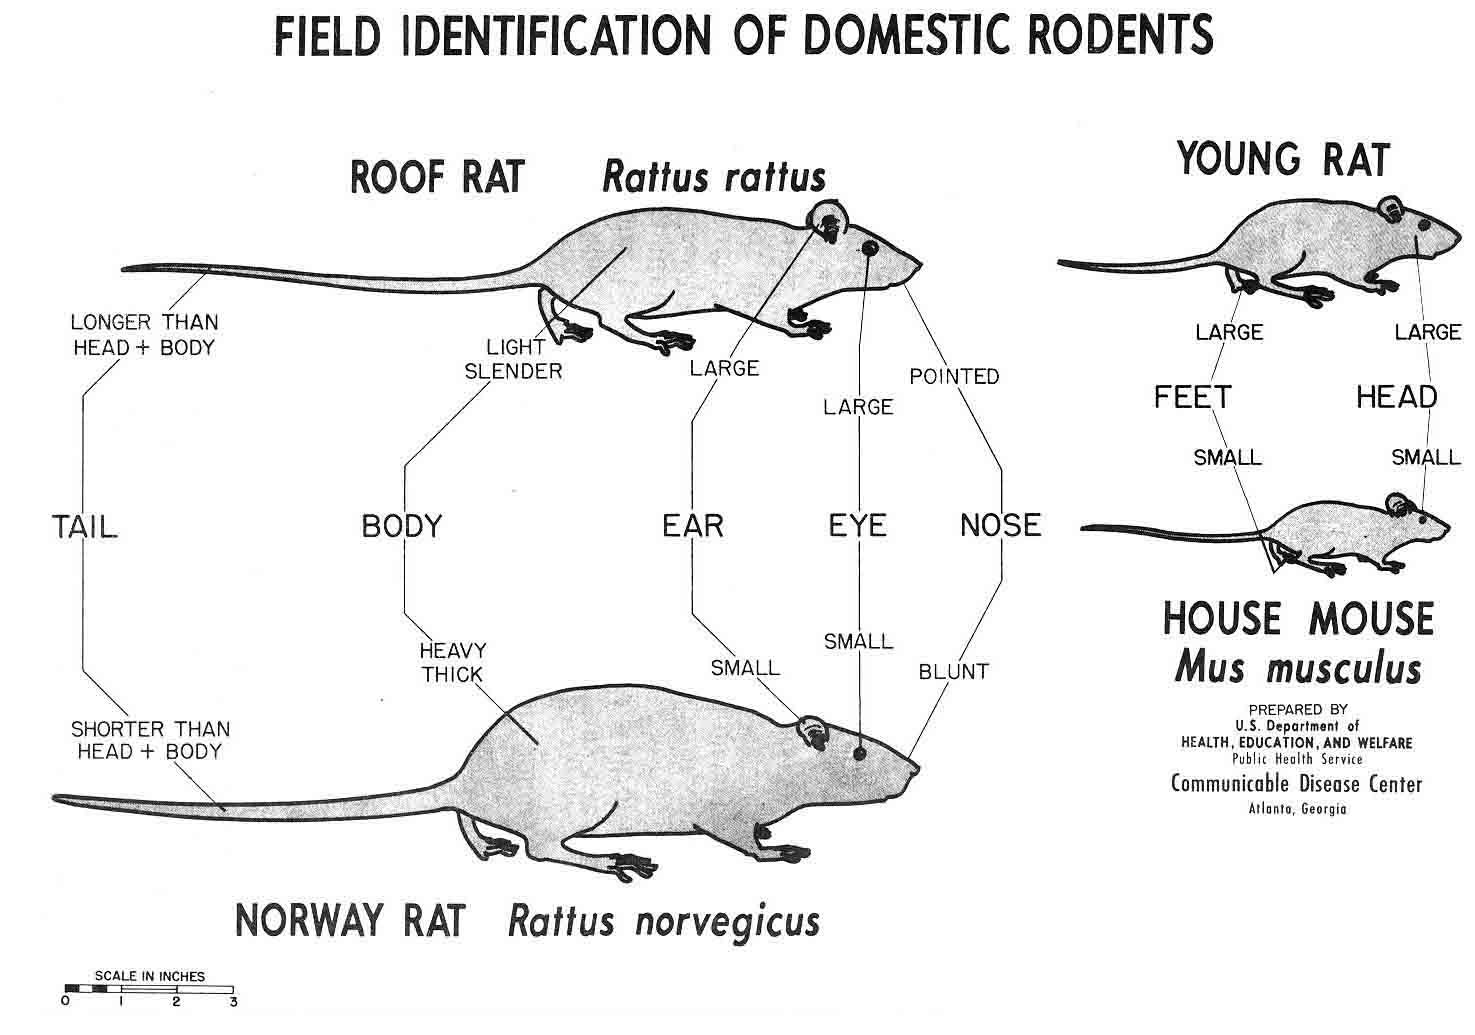 Norway rats and house mice may